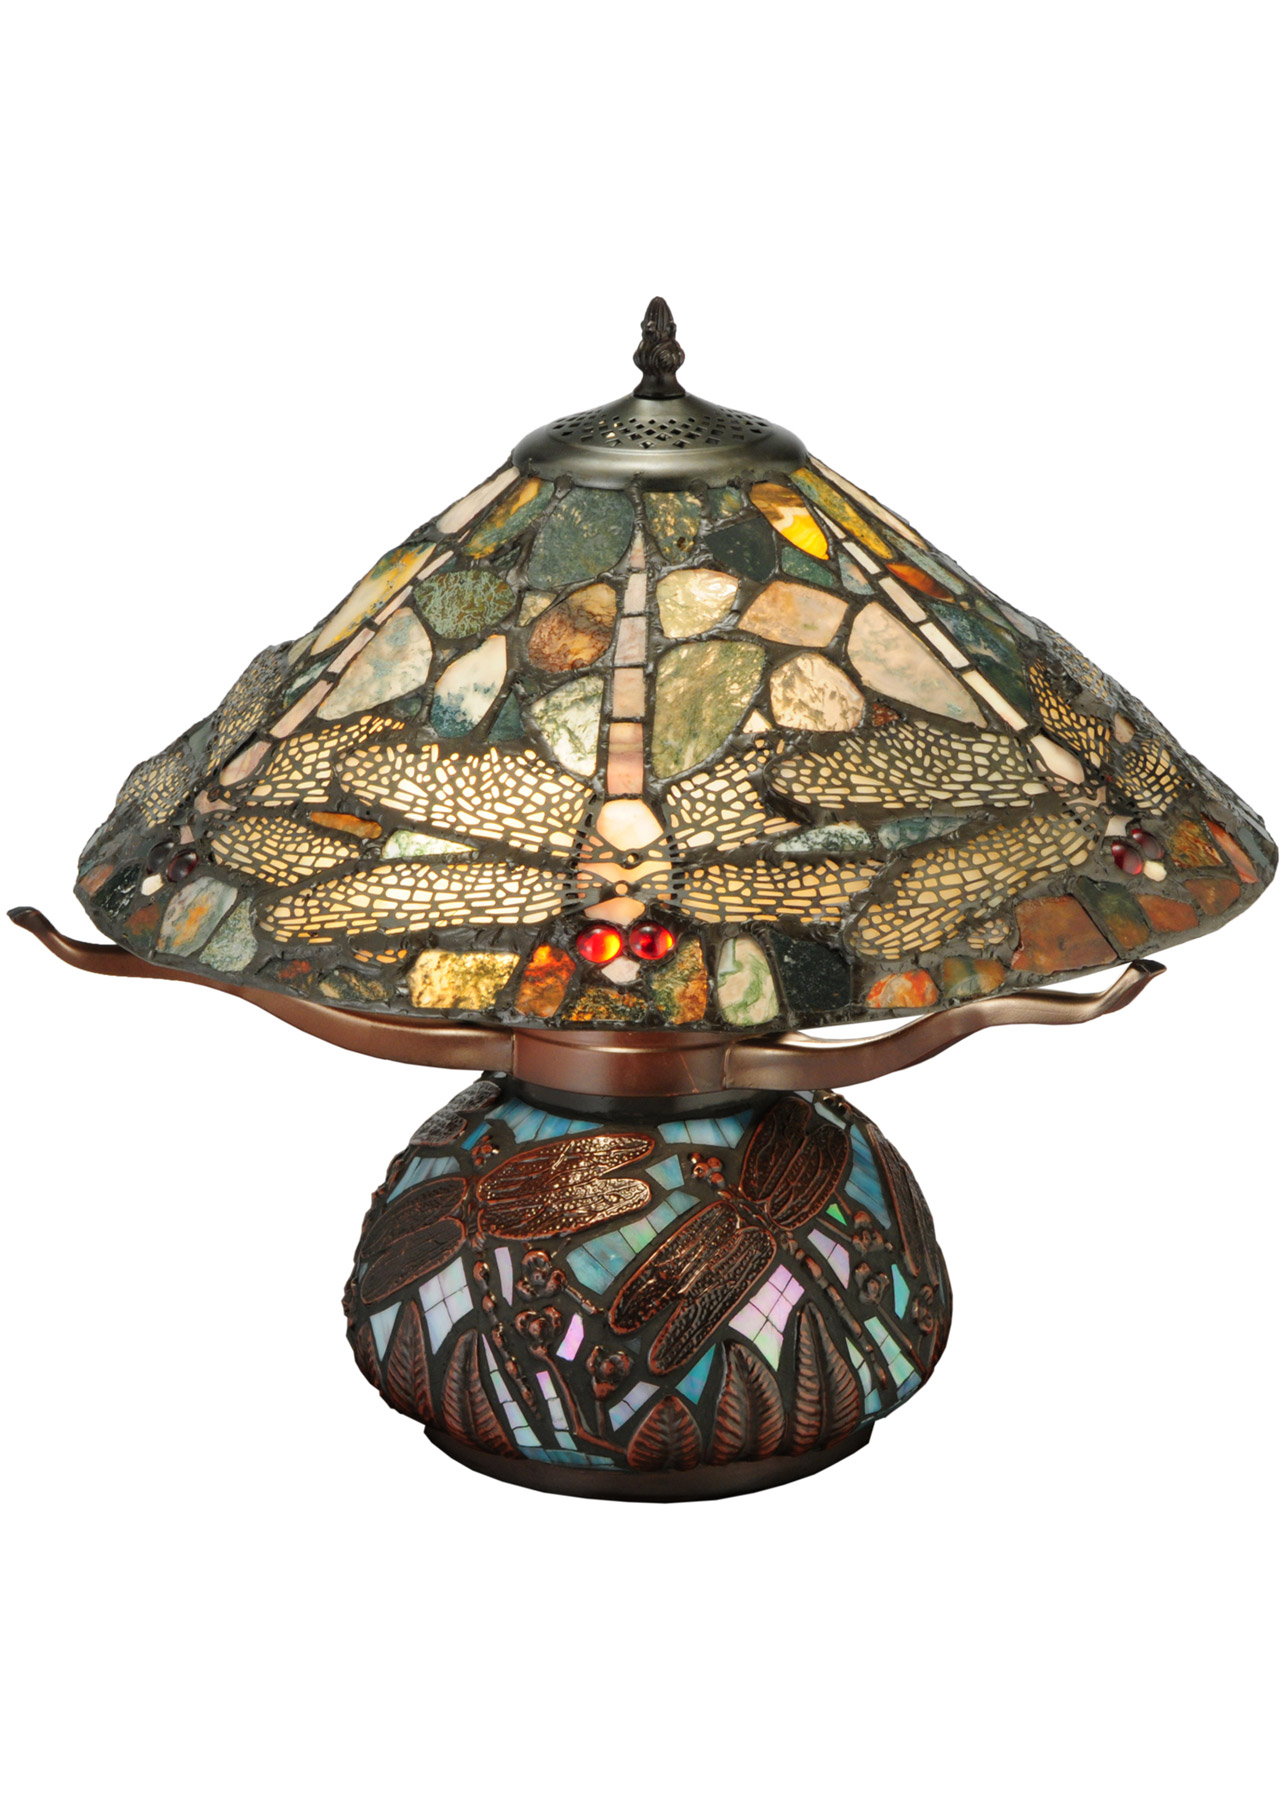 Meyda 138103 dragonfly agate table lamp alternate image 1 alternate image 2 alternate image 3 aloadofball Image collections